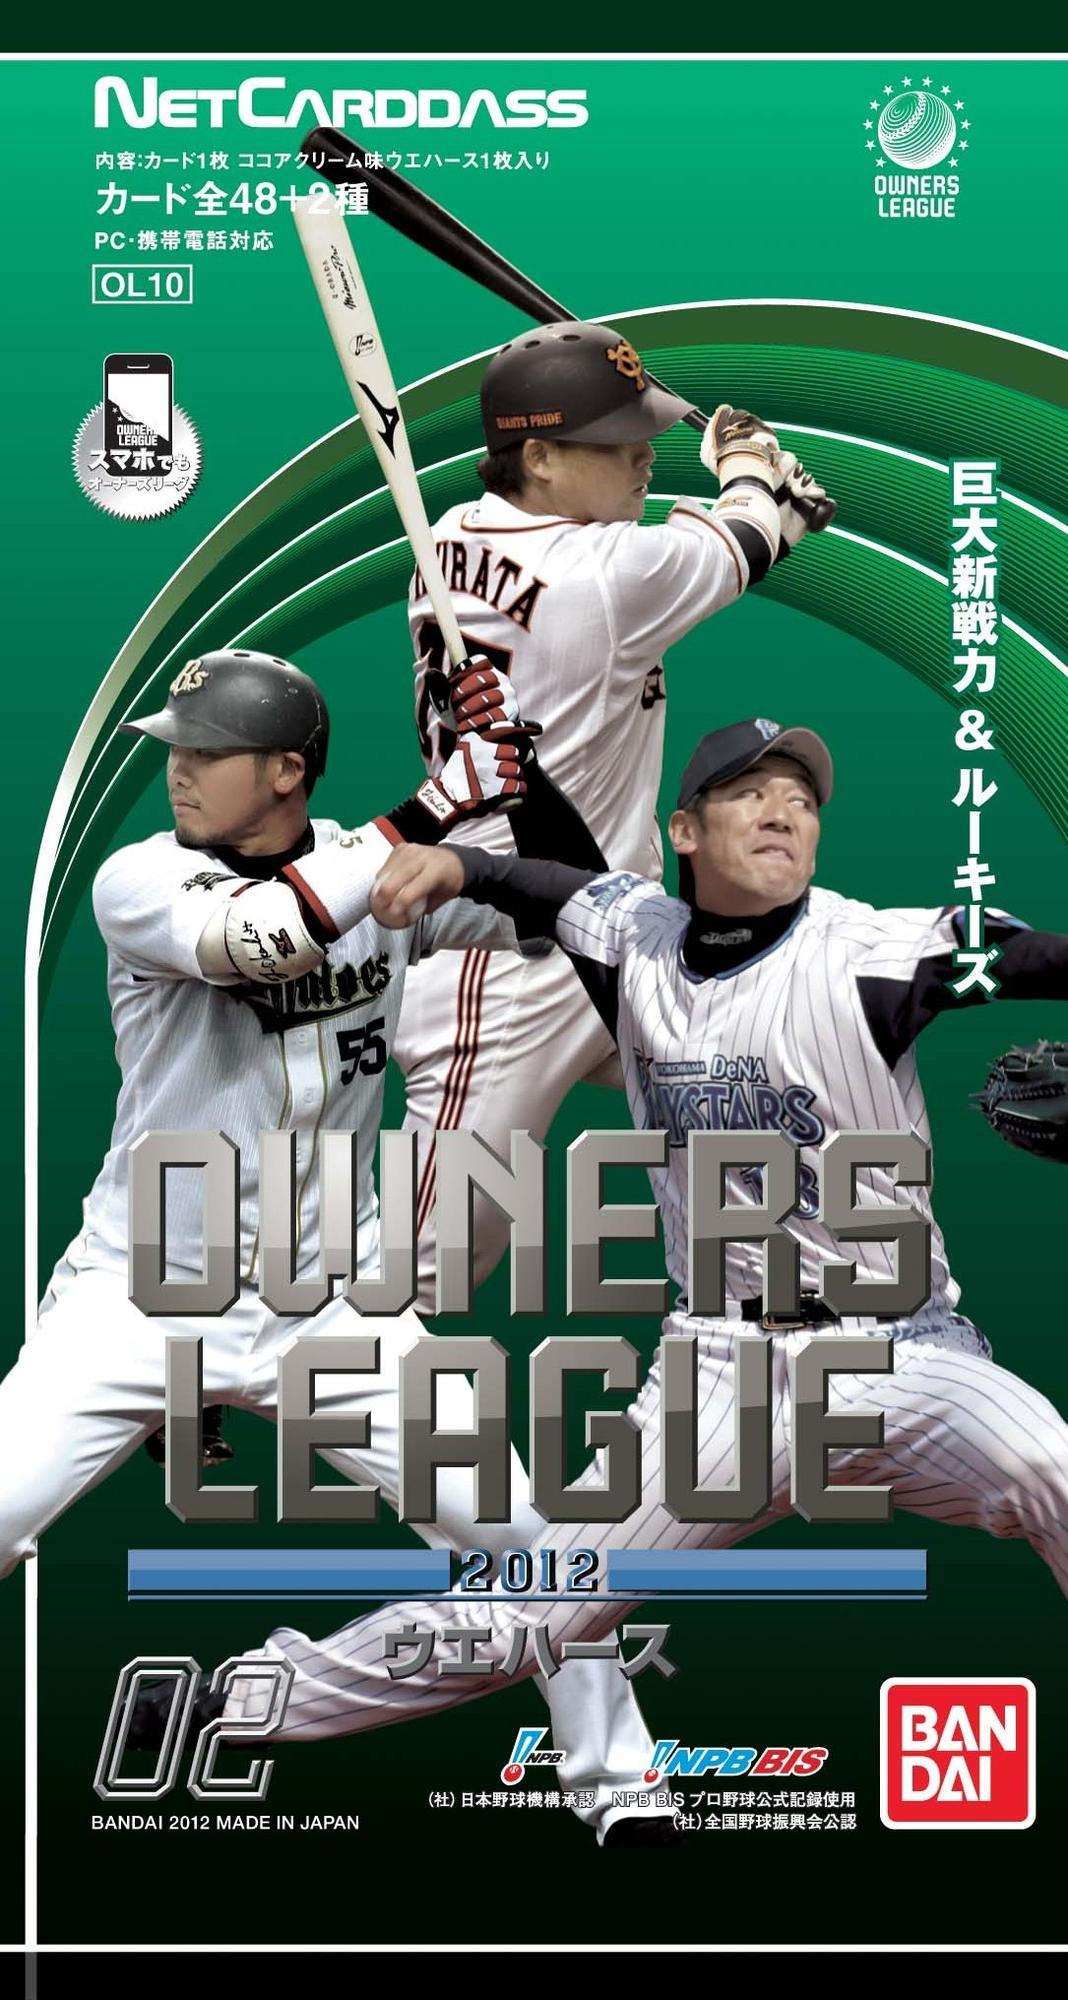 OWNERS LEAGUE 2012ウエハース 02_0